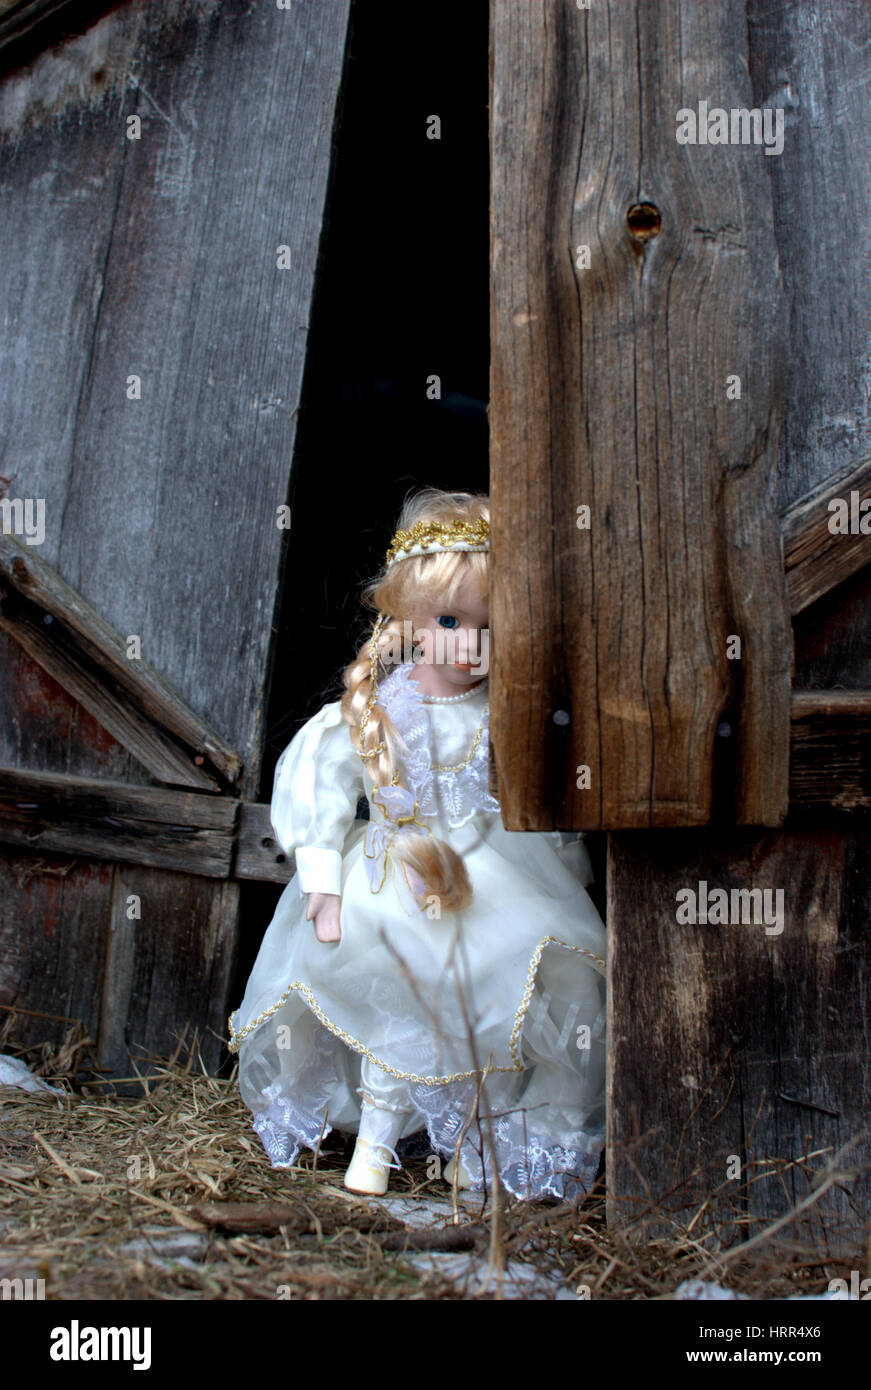 An old doll decided to travel herself arround old farmstead - Stock Image